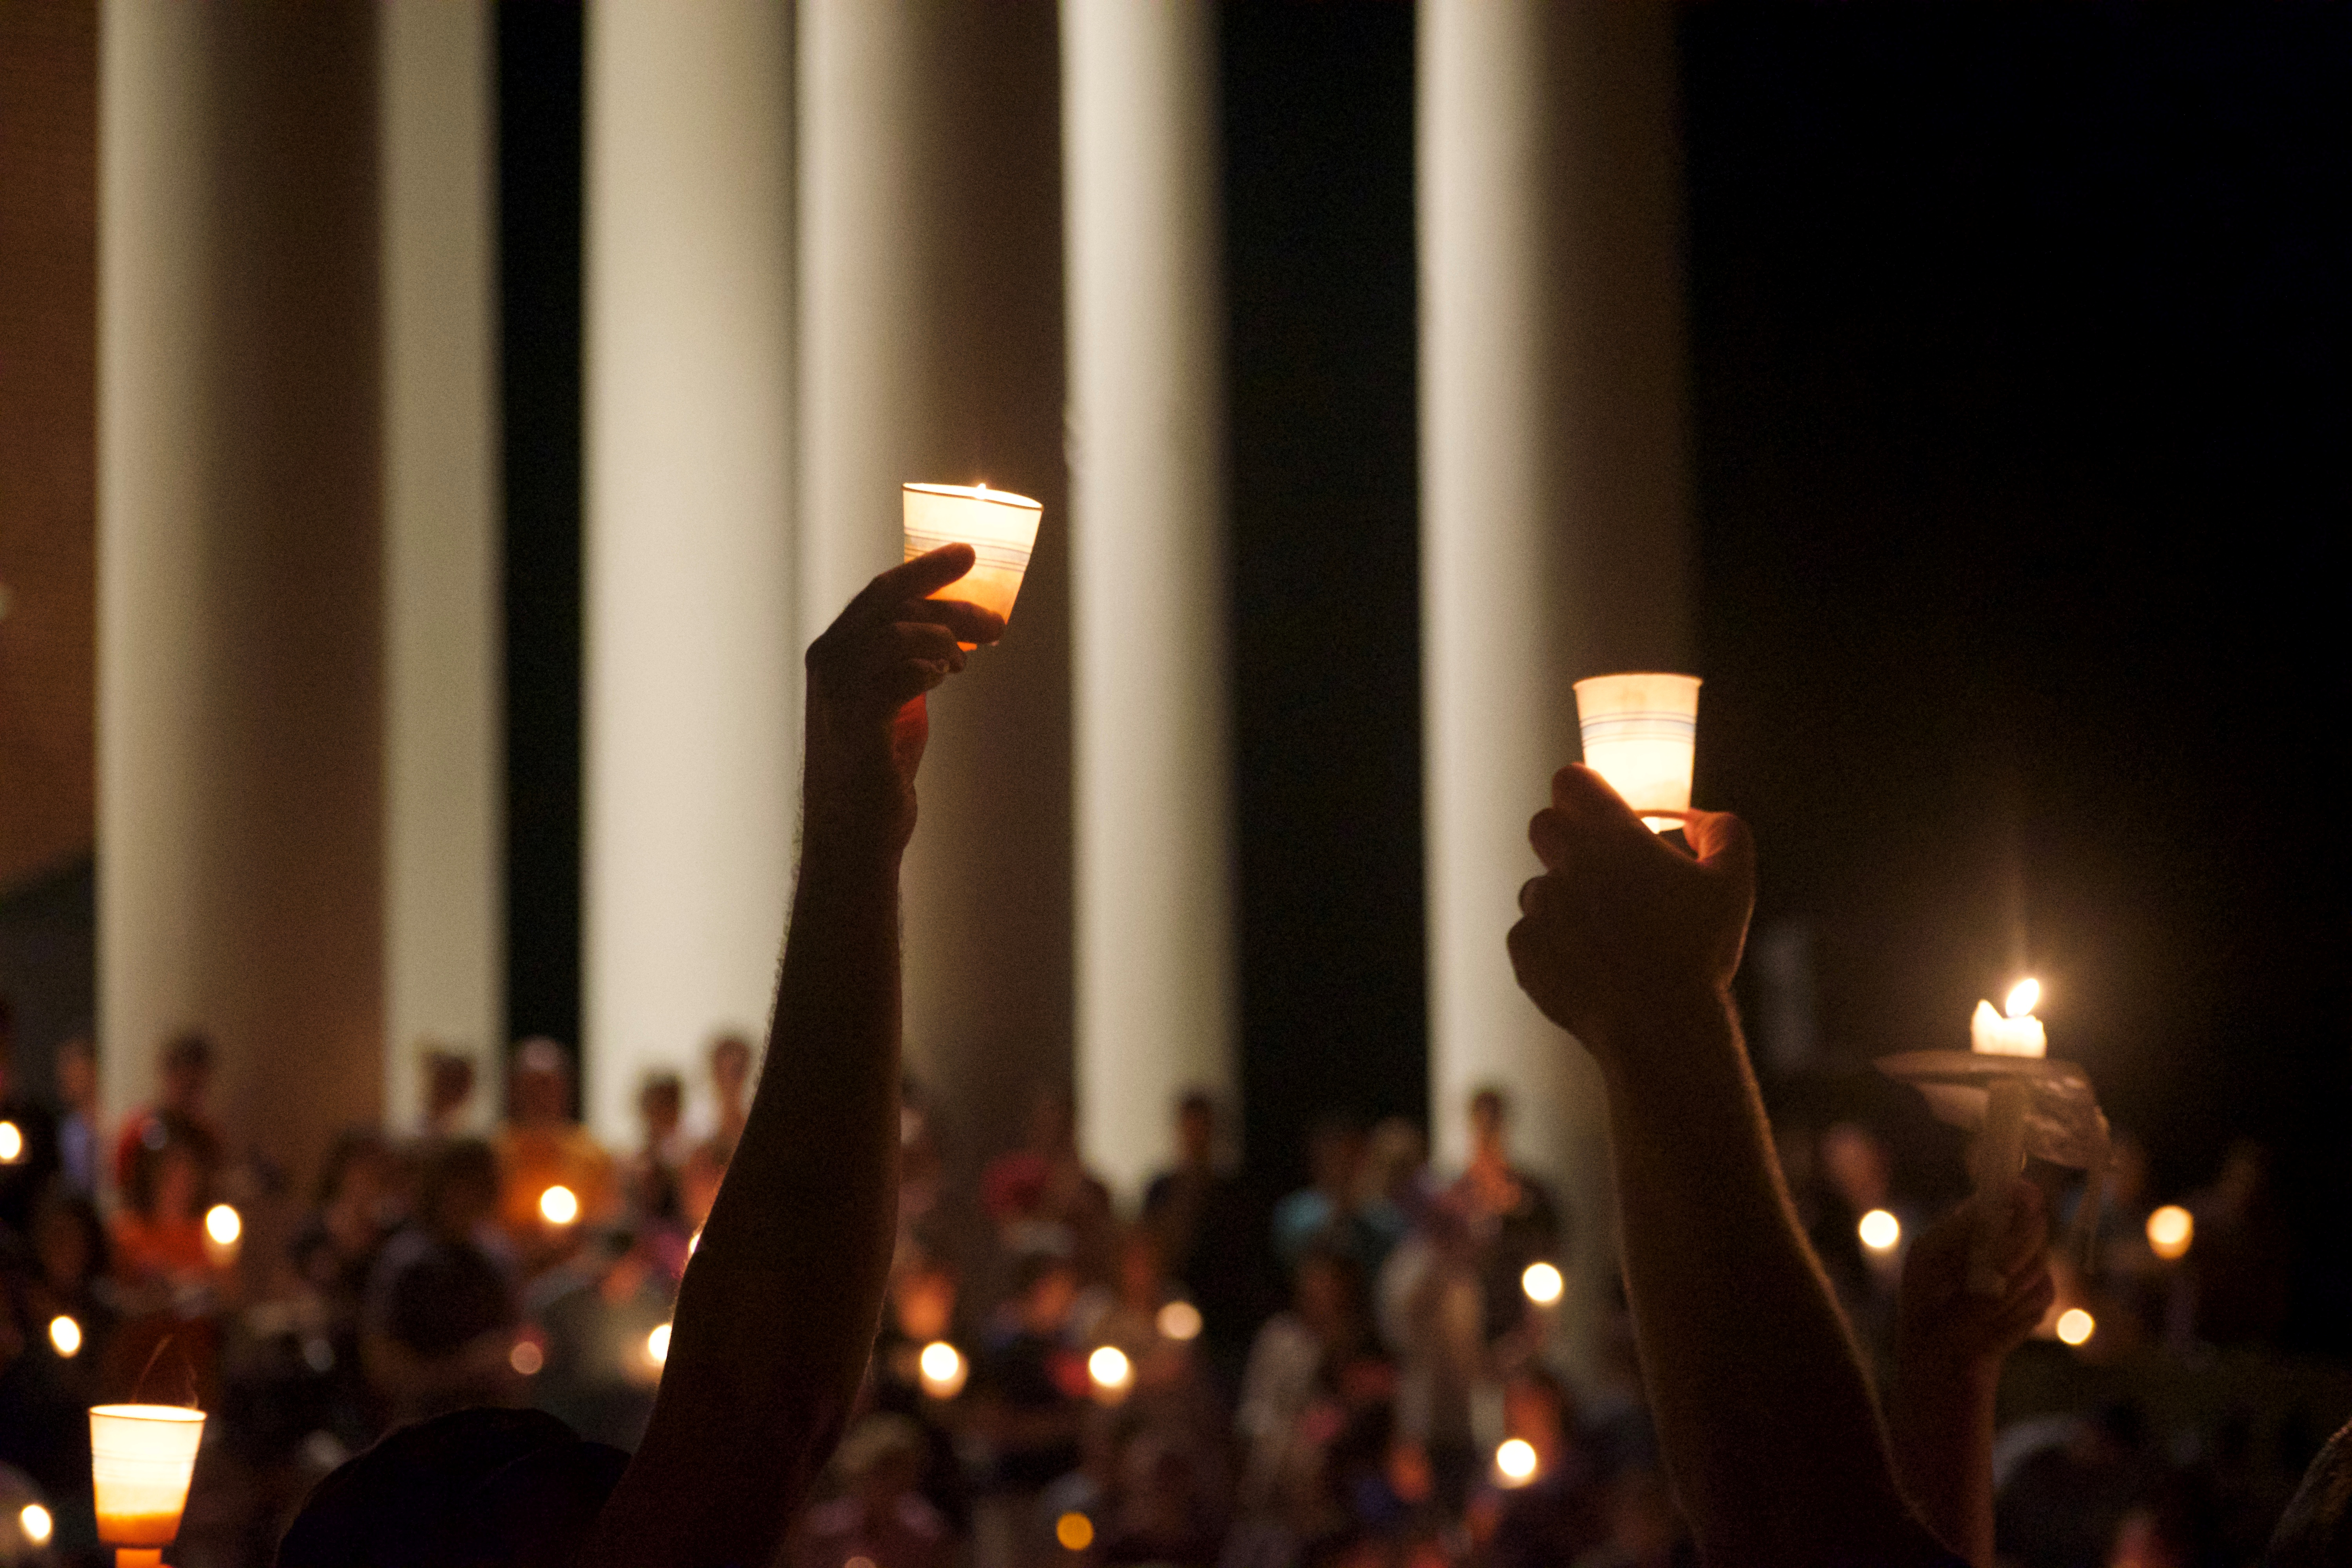 Members of the Charlottesville community hold a vigil for Heather Heyer at the University of Virginia in Charlottesville.